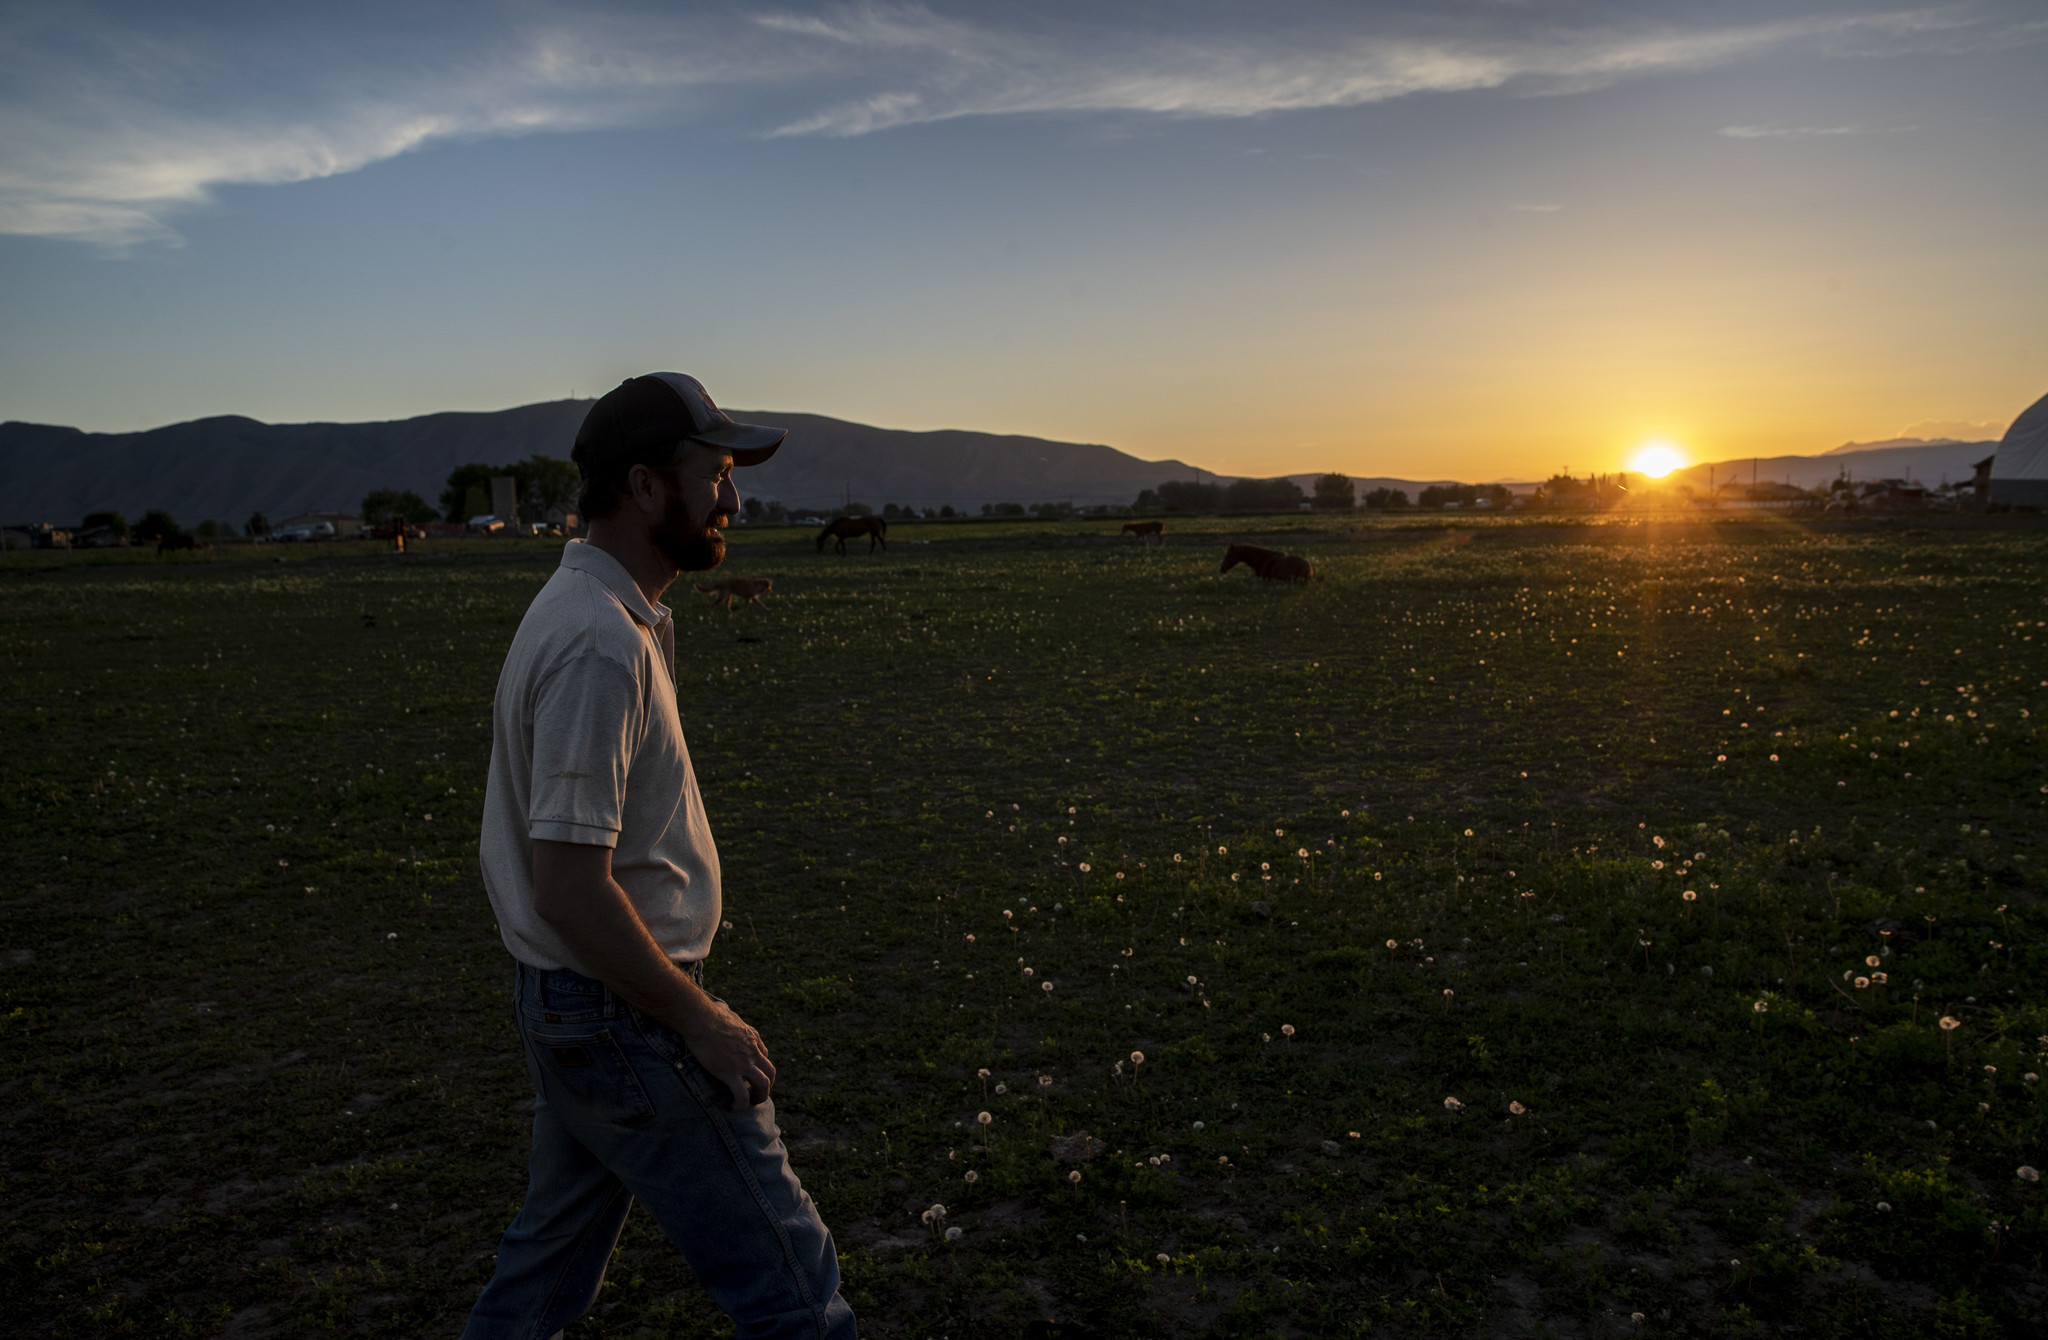 BENJAMIN, UTAH — TUESDAY, JUNE 4, 2019: Nathan Ivie walks through a pasture as the sun sets at his